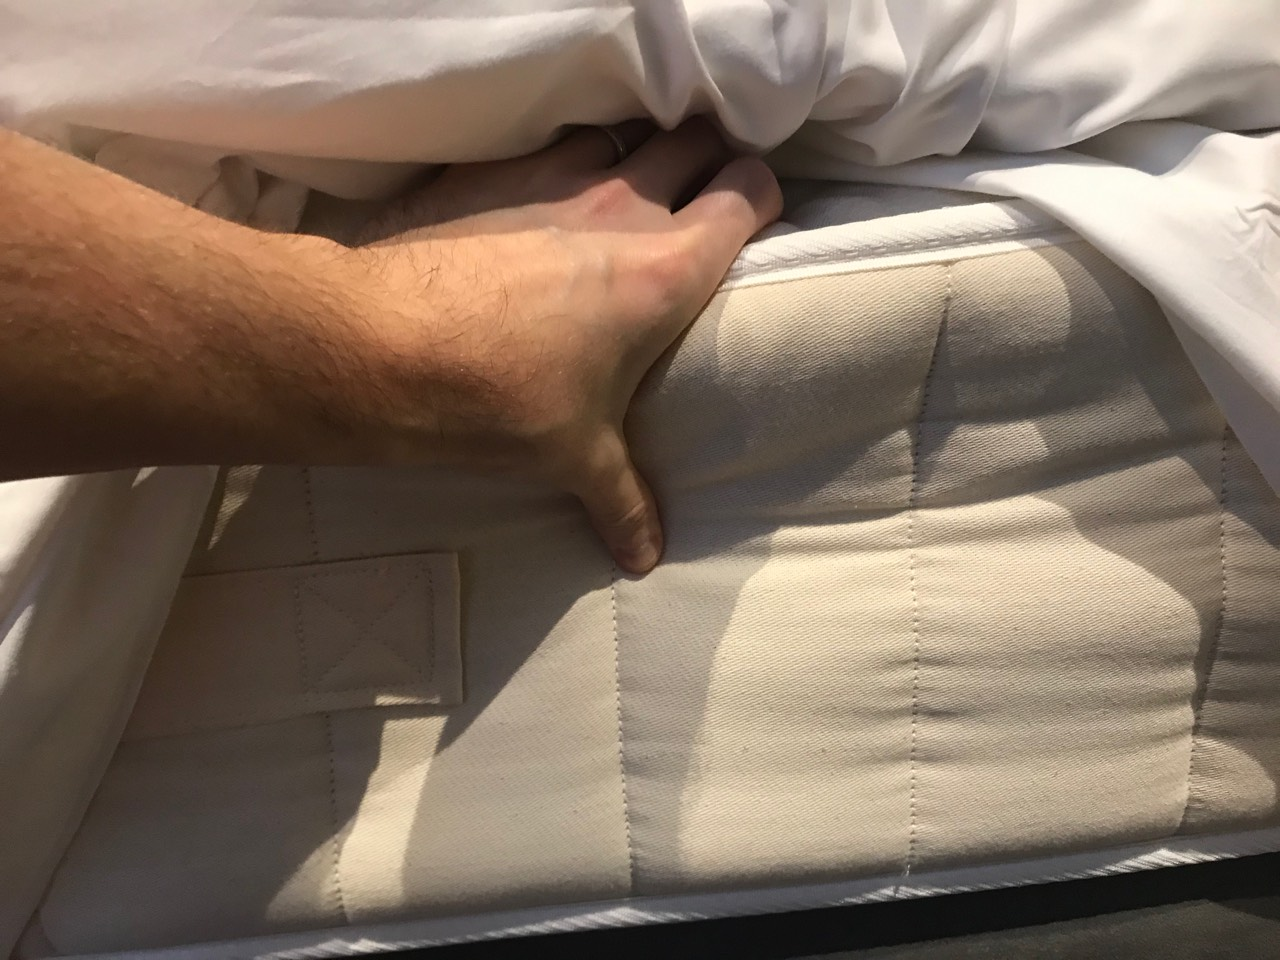 Checking an open coil mattress